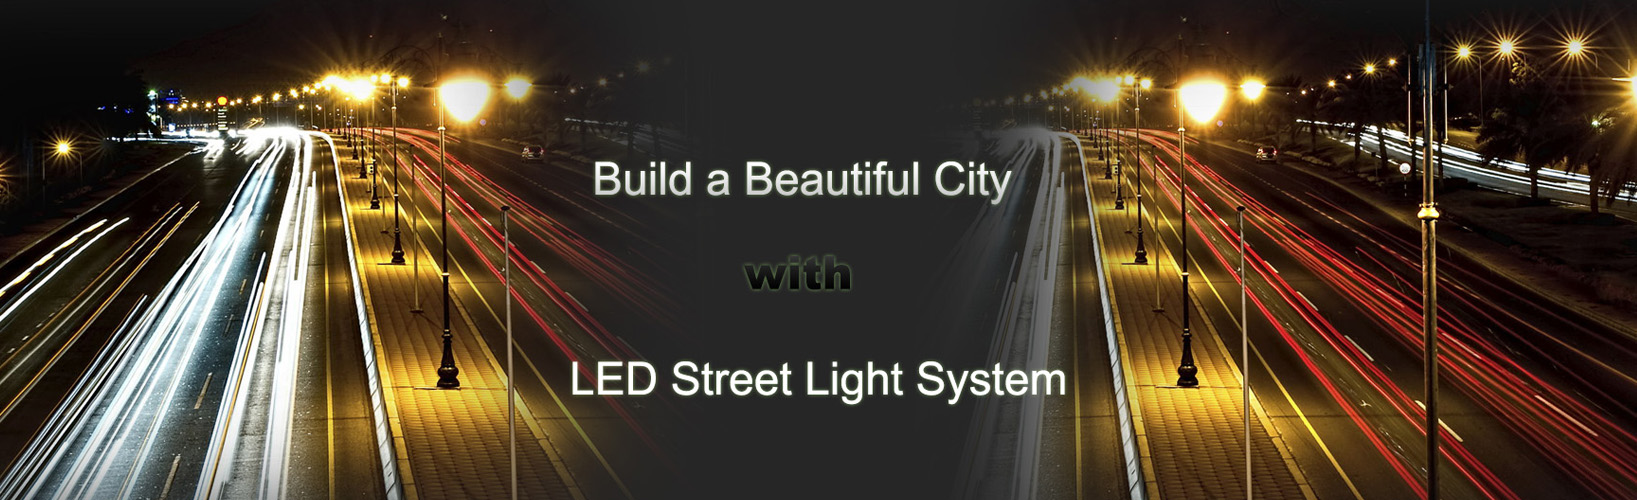 LED Street Light Manufacturer Banner - SUNPER LED